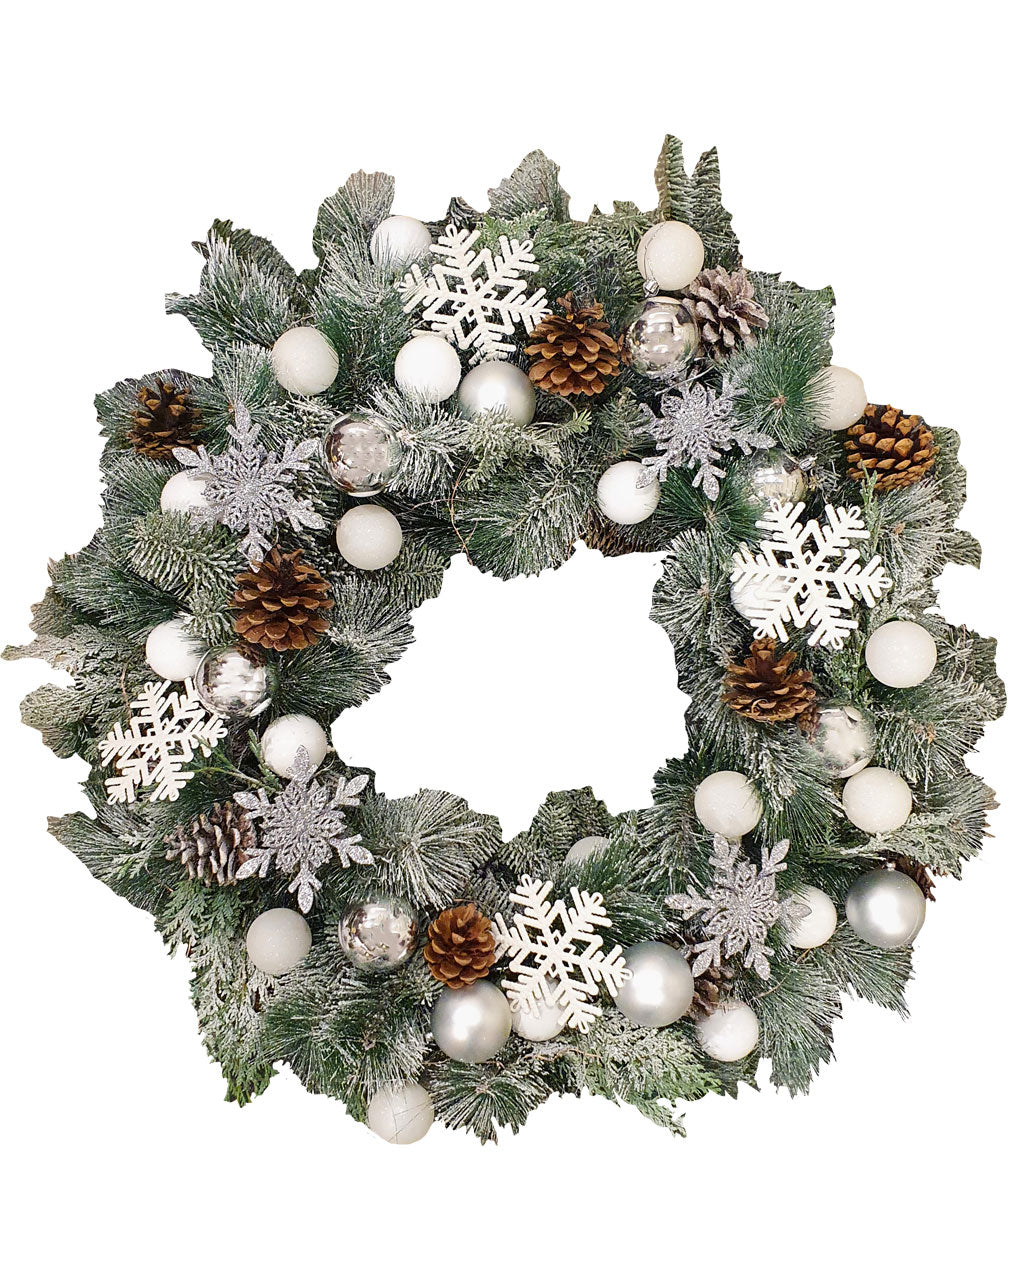 Large Winter wonderland wreath